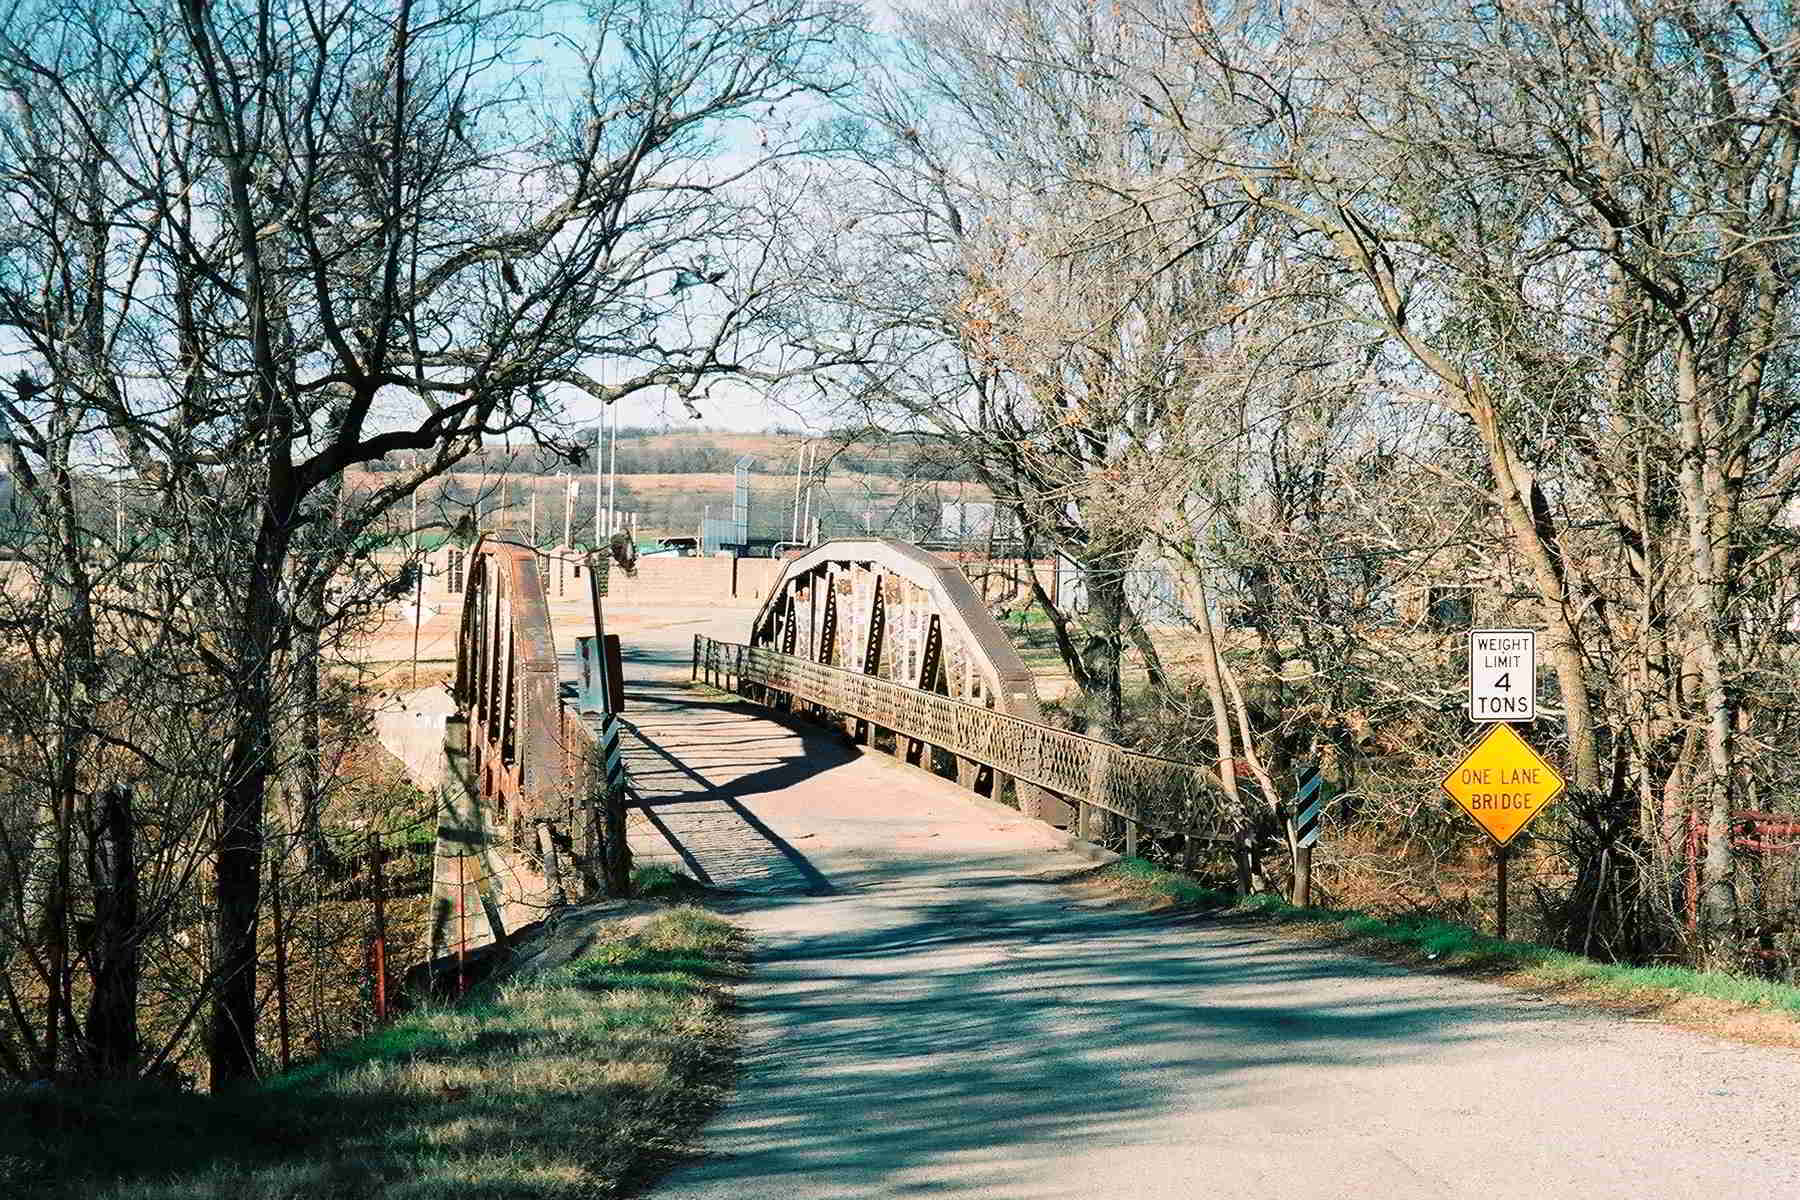 Ripley oklahoma swinging bridge